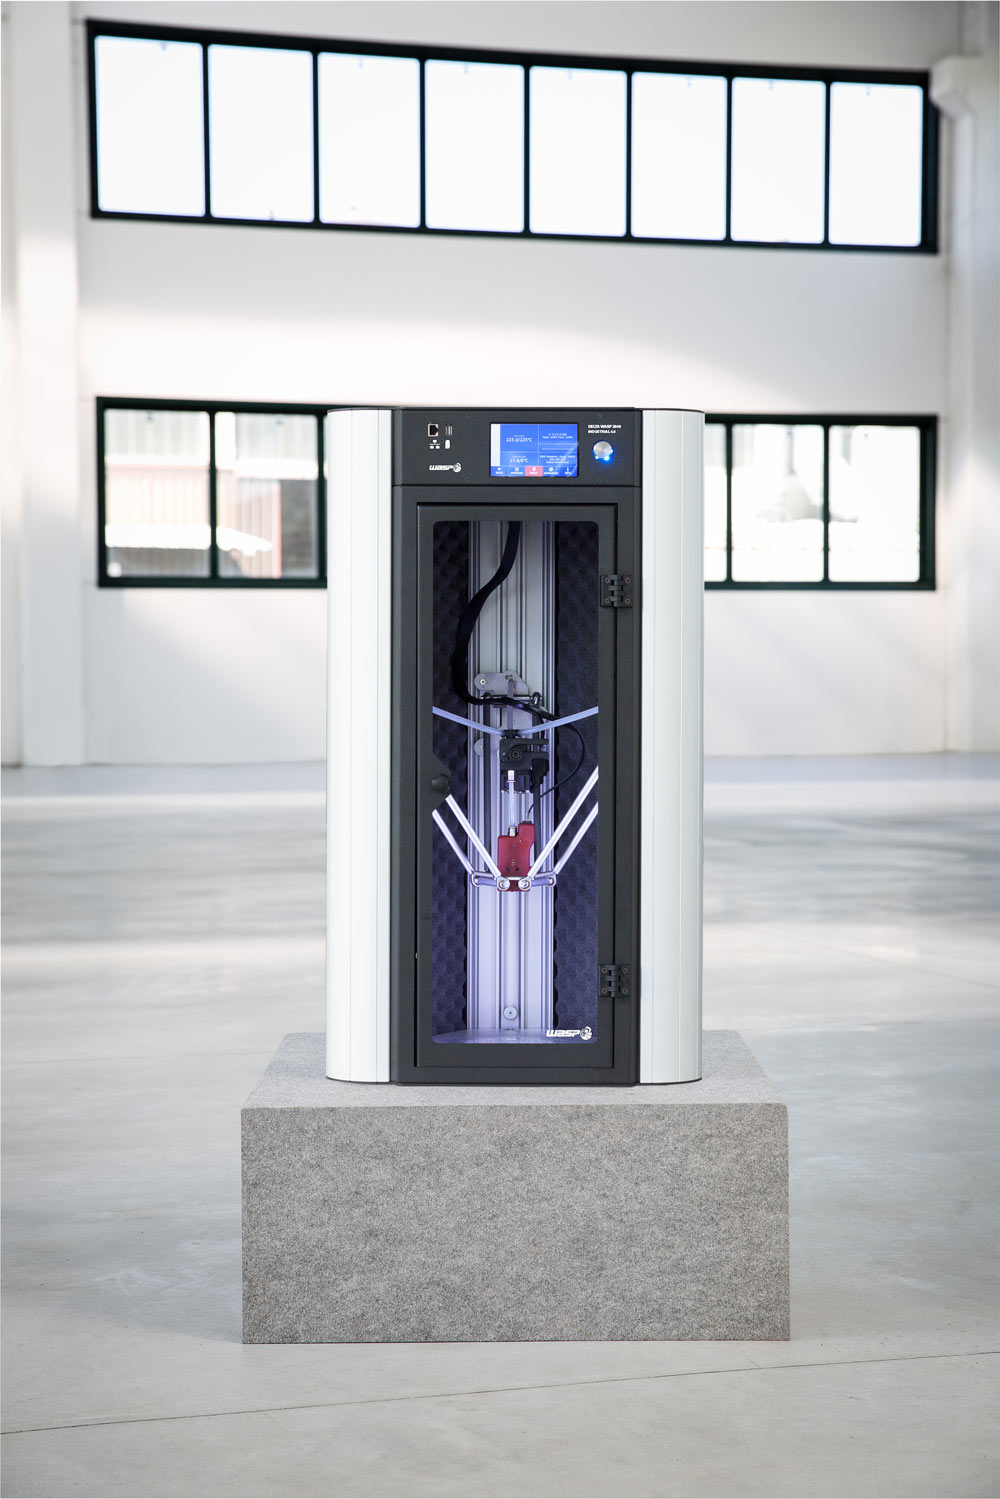 The Industrial Line 4.0 3D printer. Photo via WASP.